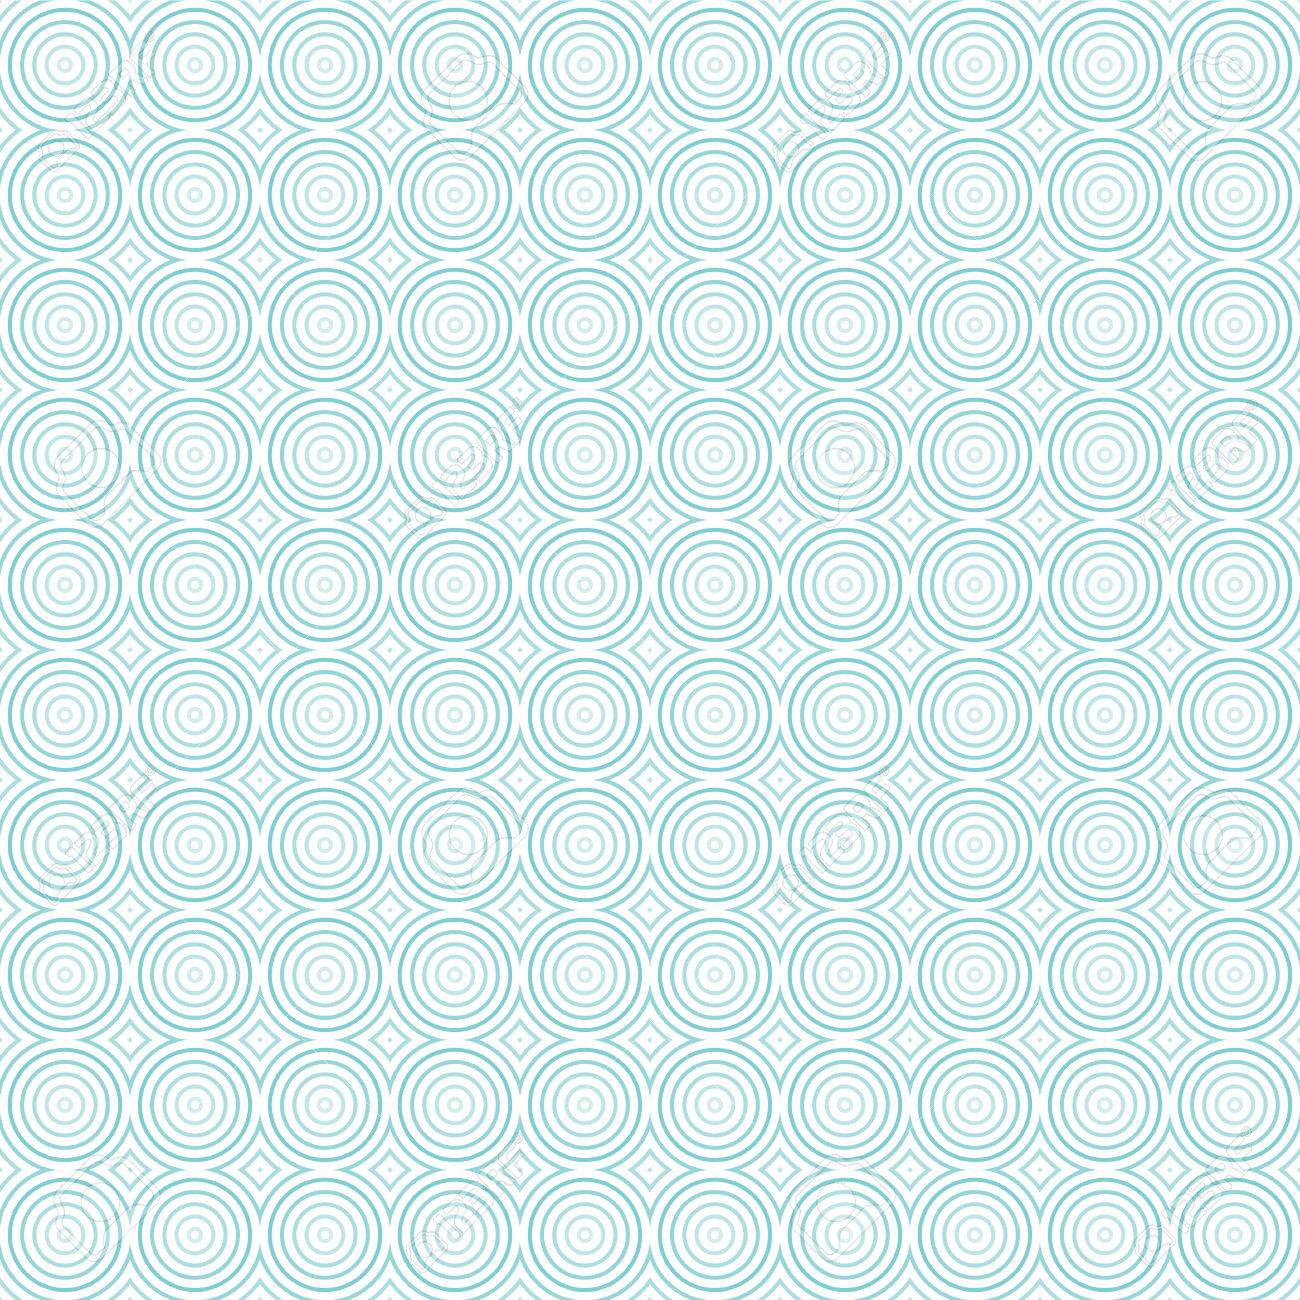 Seamless Geometric Pattern Of Concentric Circles. Shades Of Light Blue.  Transparent Background. Stock